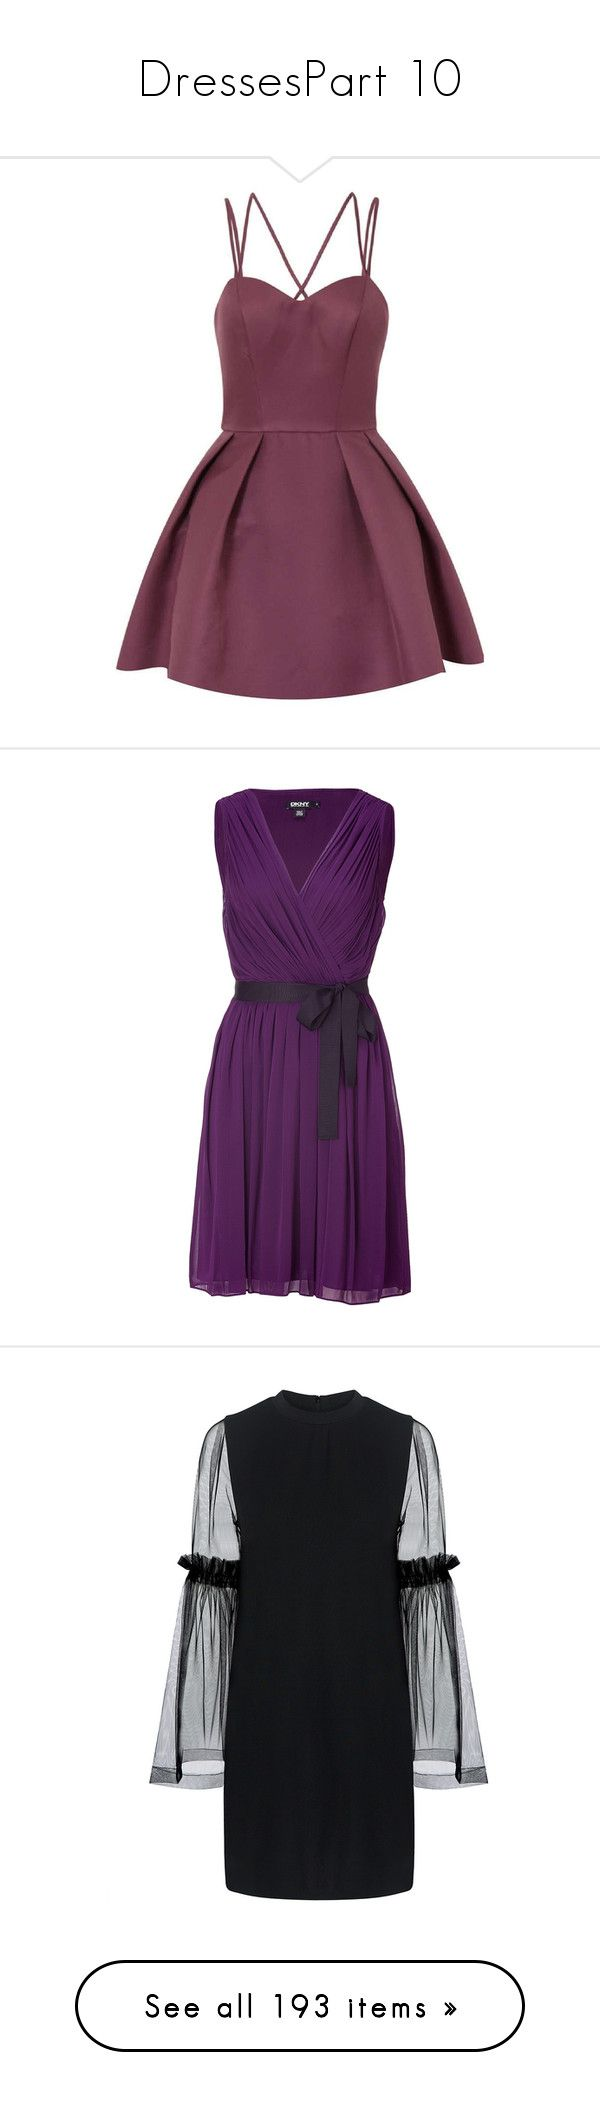 """Dresses\Part 10"" by bestgirlever ❤ liked on Polyvore featuring dresses, vestidos, purple, petite, short dresses, short purple dresses, purple cocktail dresses, purple dress, petite short dresses and purple dresses"